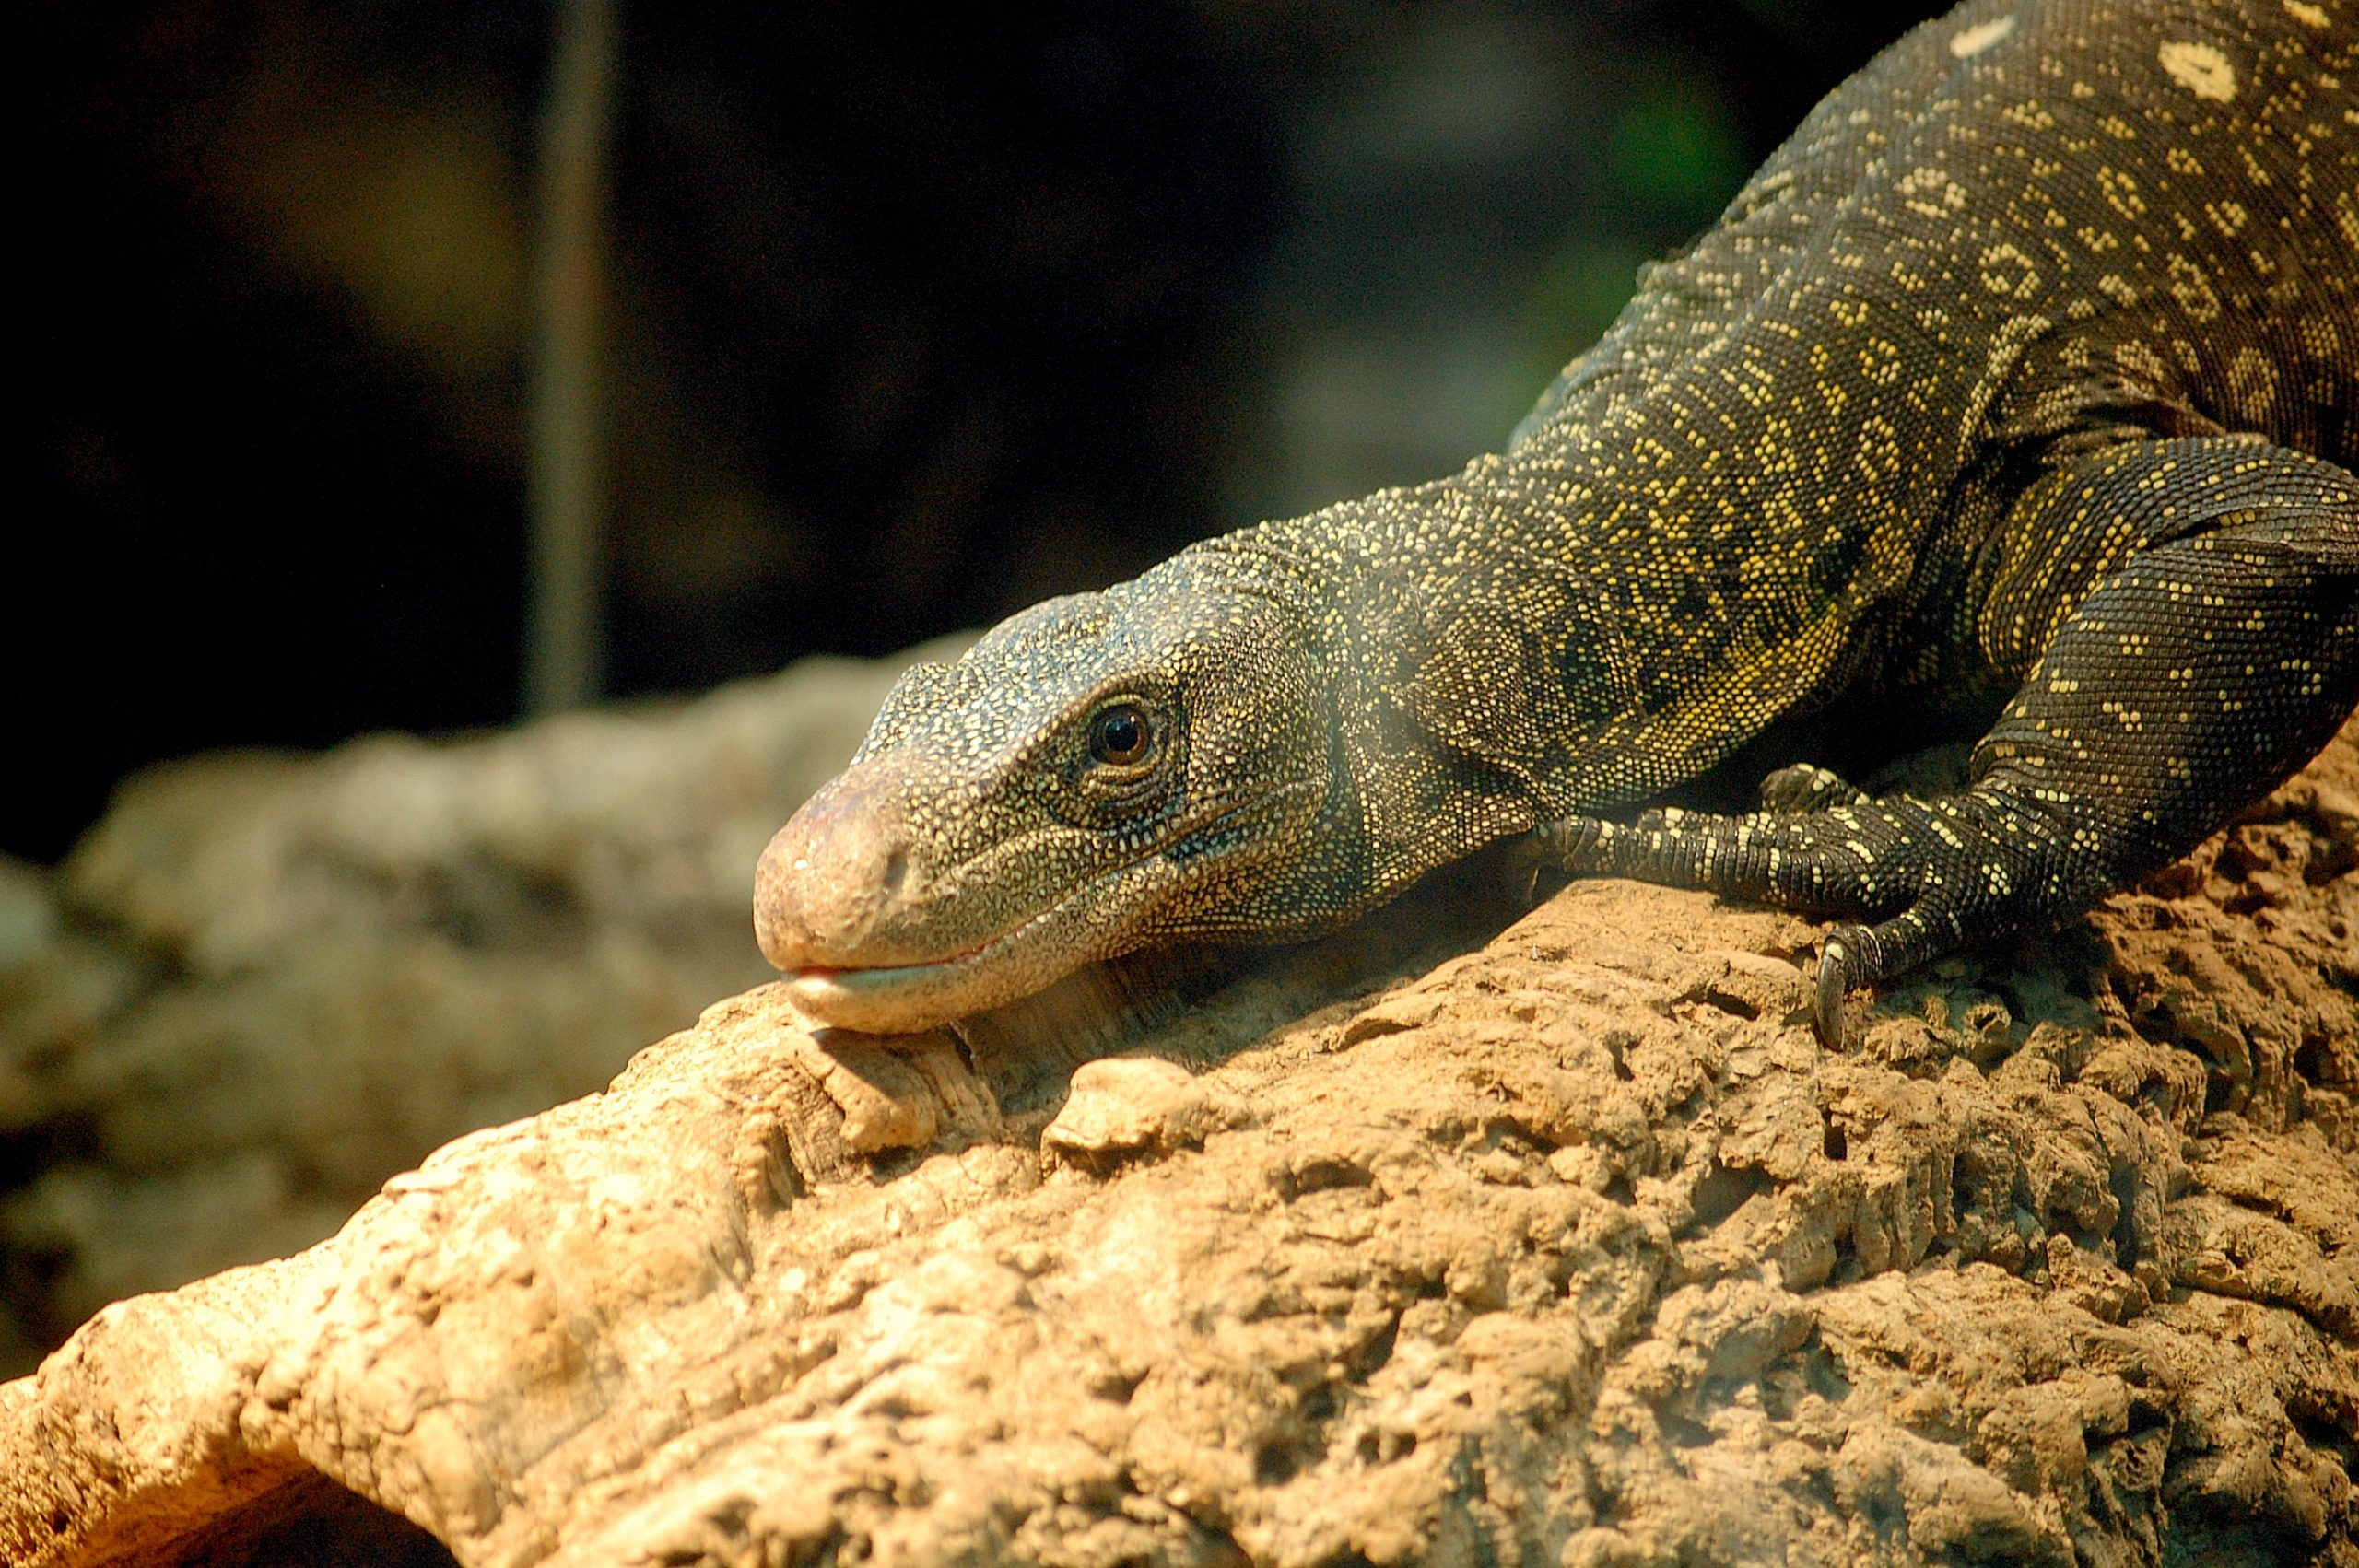 Few Details About Monitor Lizards